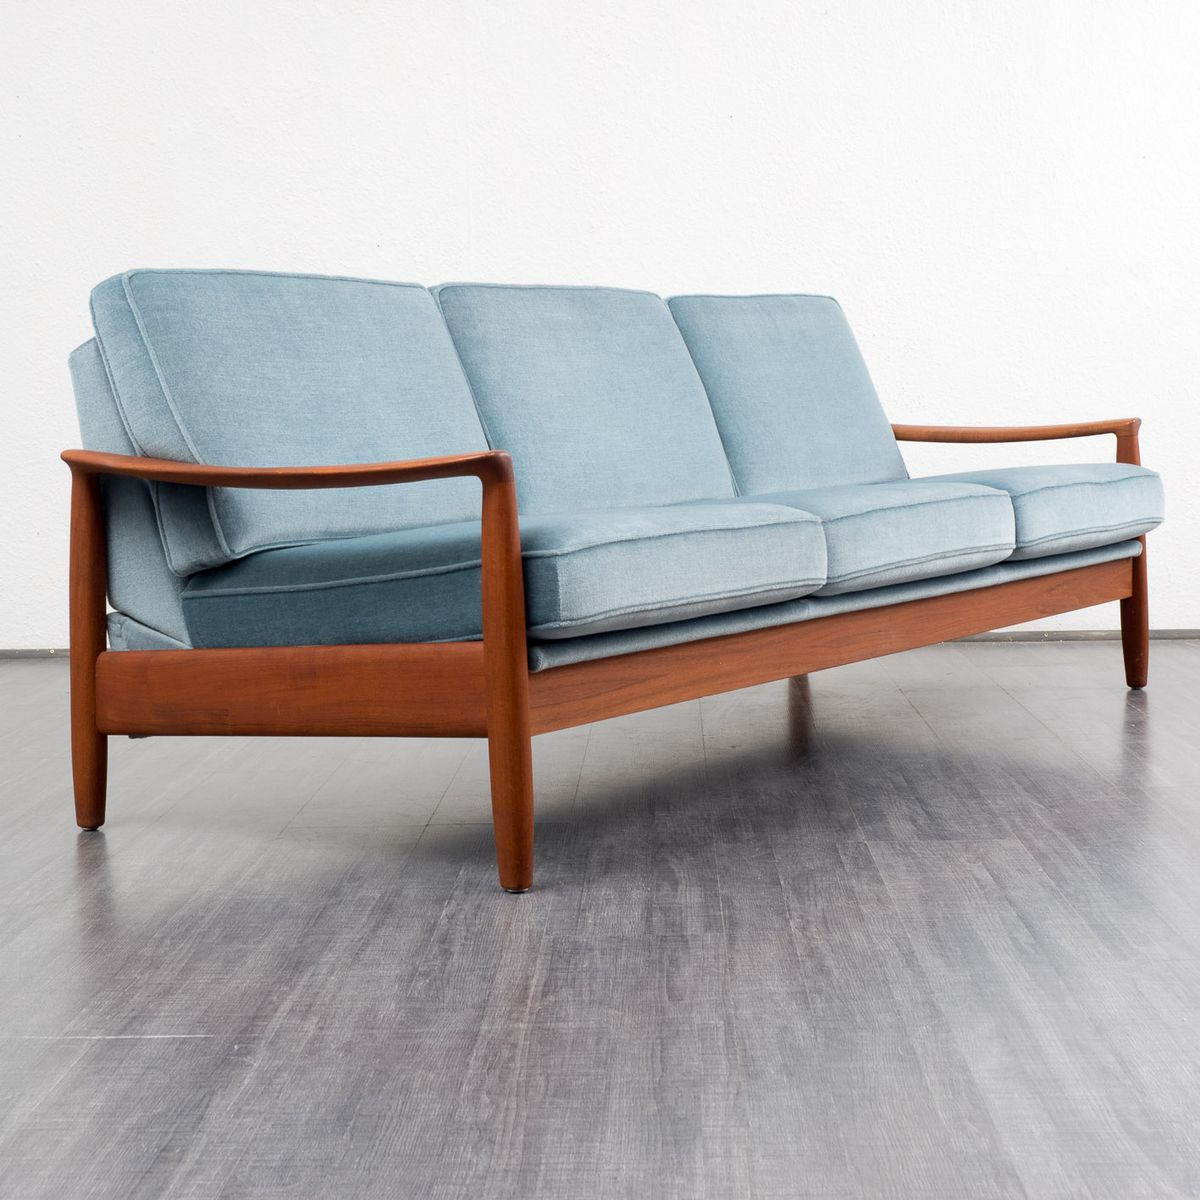 Fold out sofa bed from wk 1960s for sale at pamono for Sofa bed germany